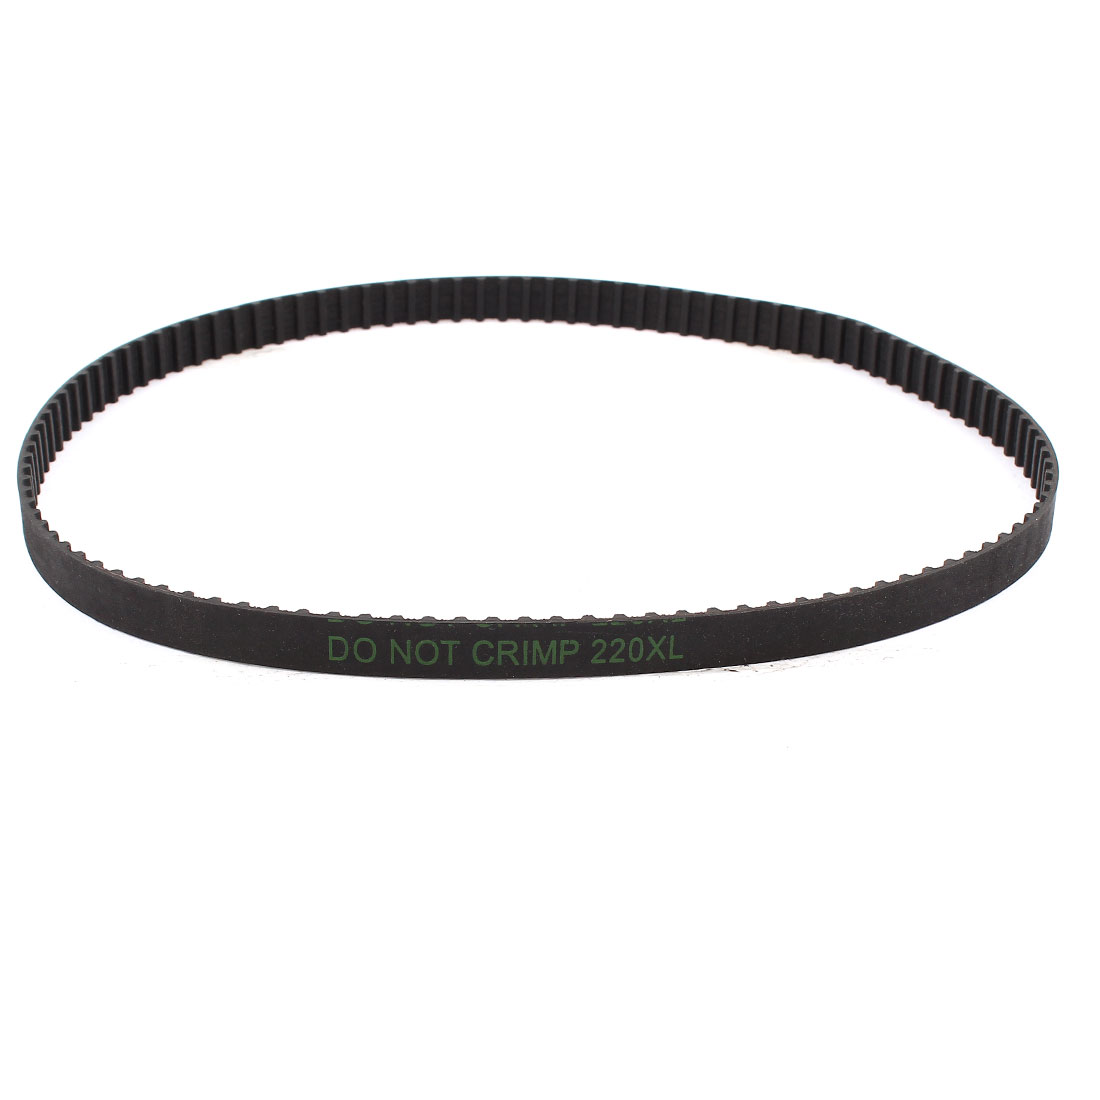 "220XL 22"" Girth 5.08mm Pitch 110-Teeth Black Rubber Industrial Synchro Machine Synchronous Timing Belt"